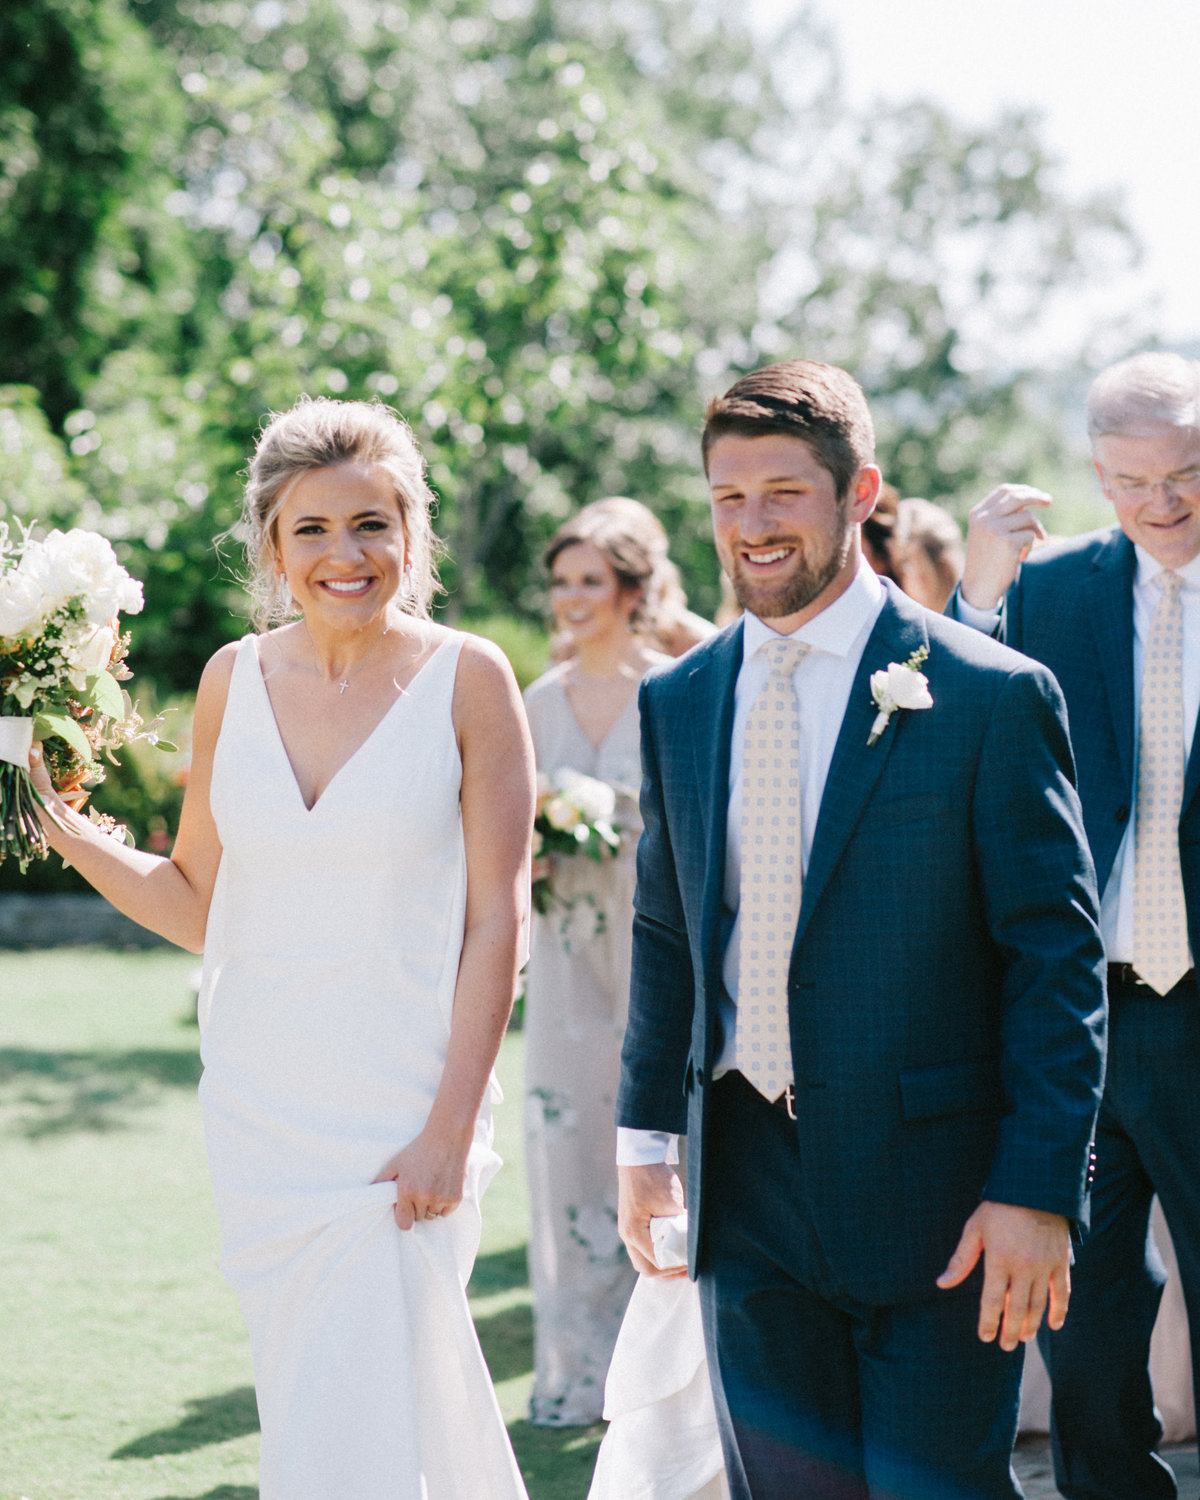 Couple smiling on their wedding day at Park Crest in Hoover AL